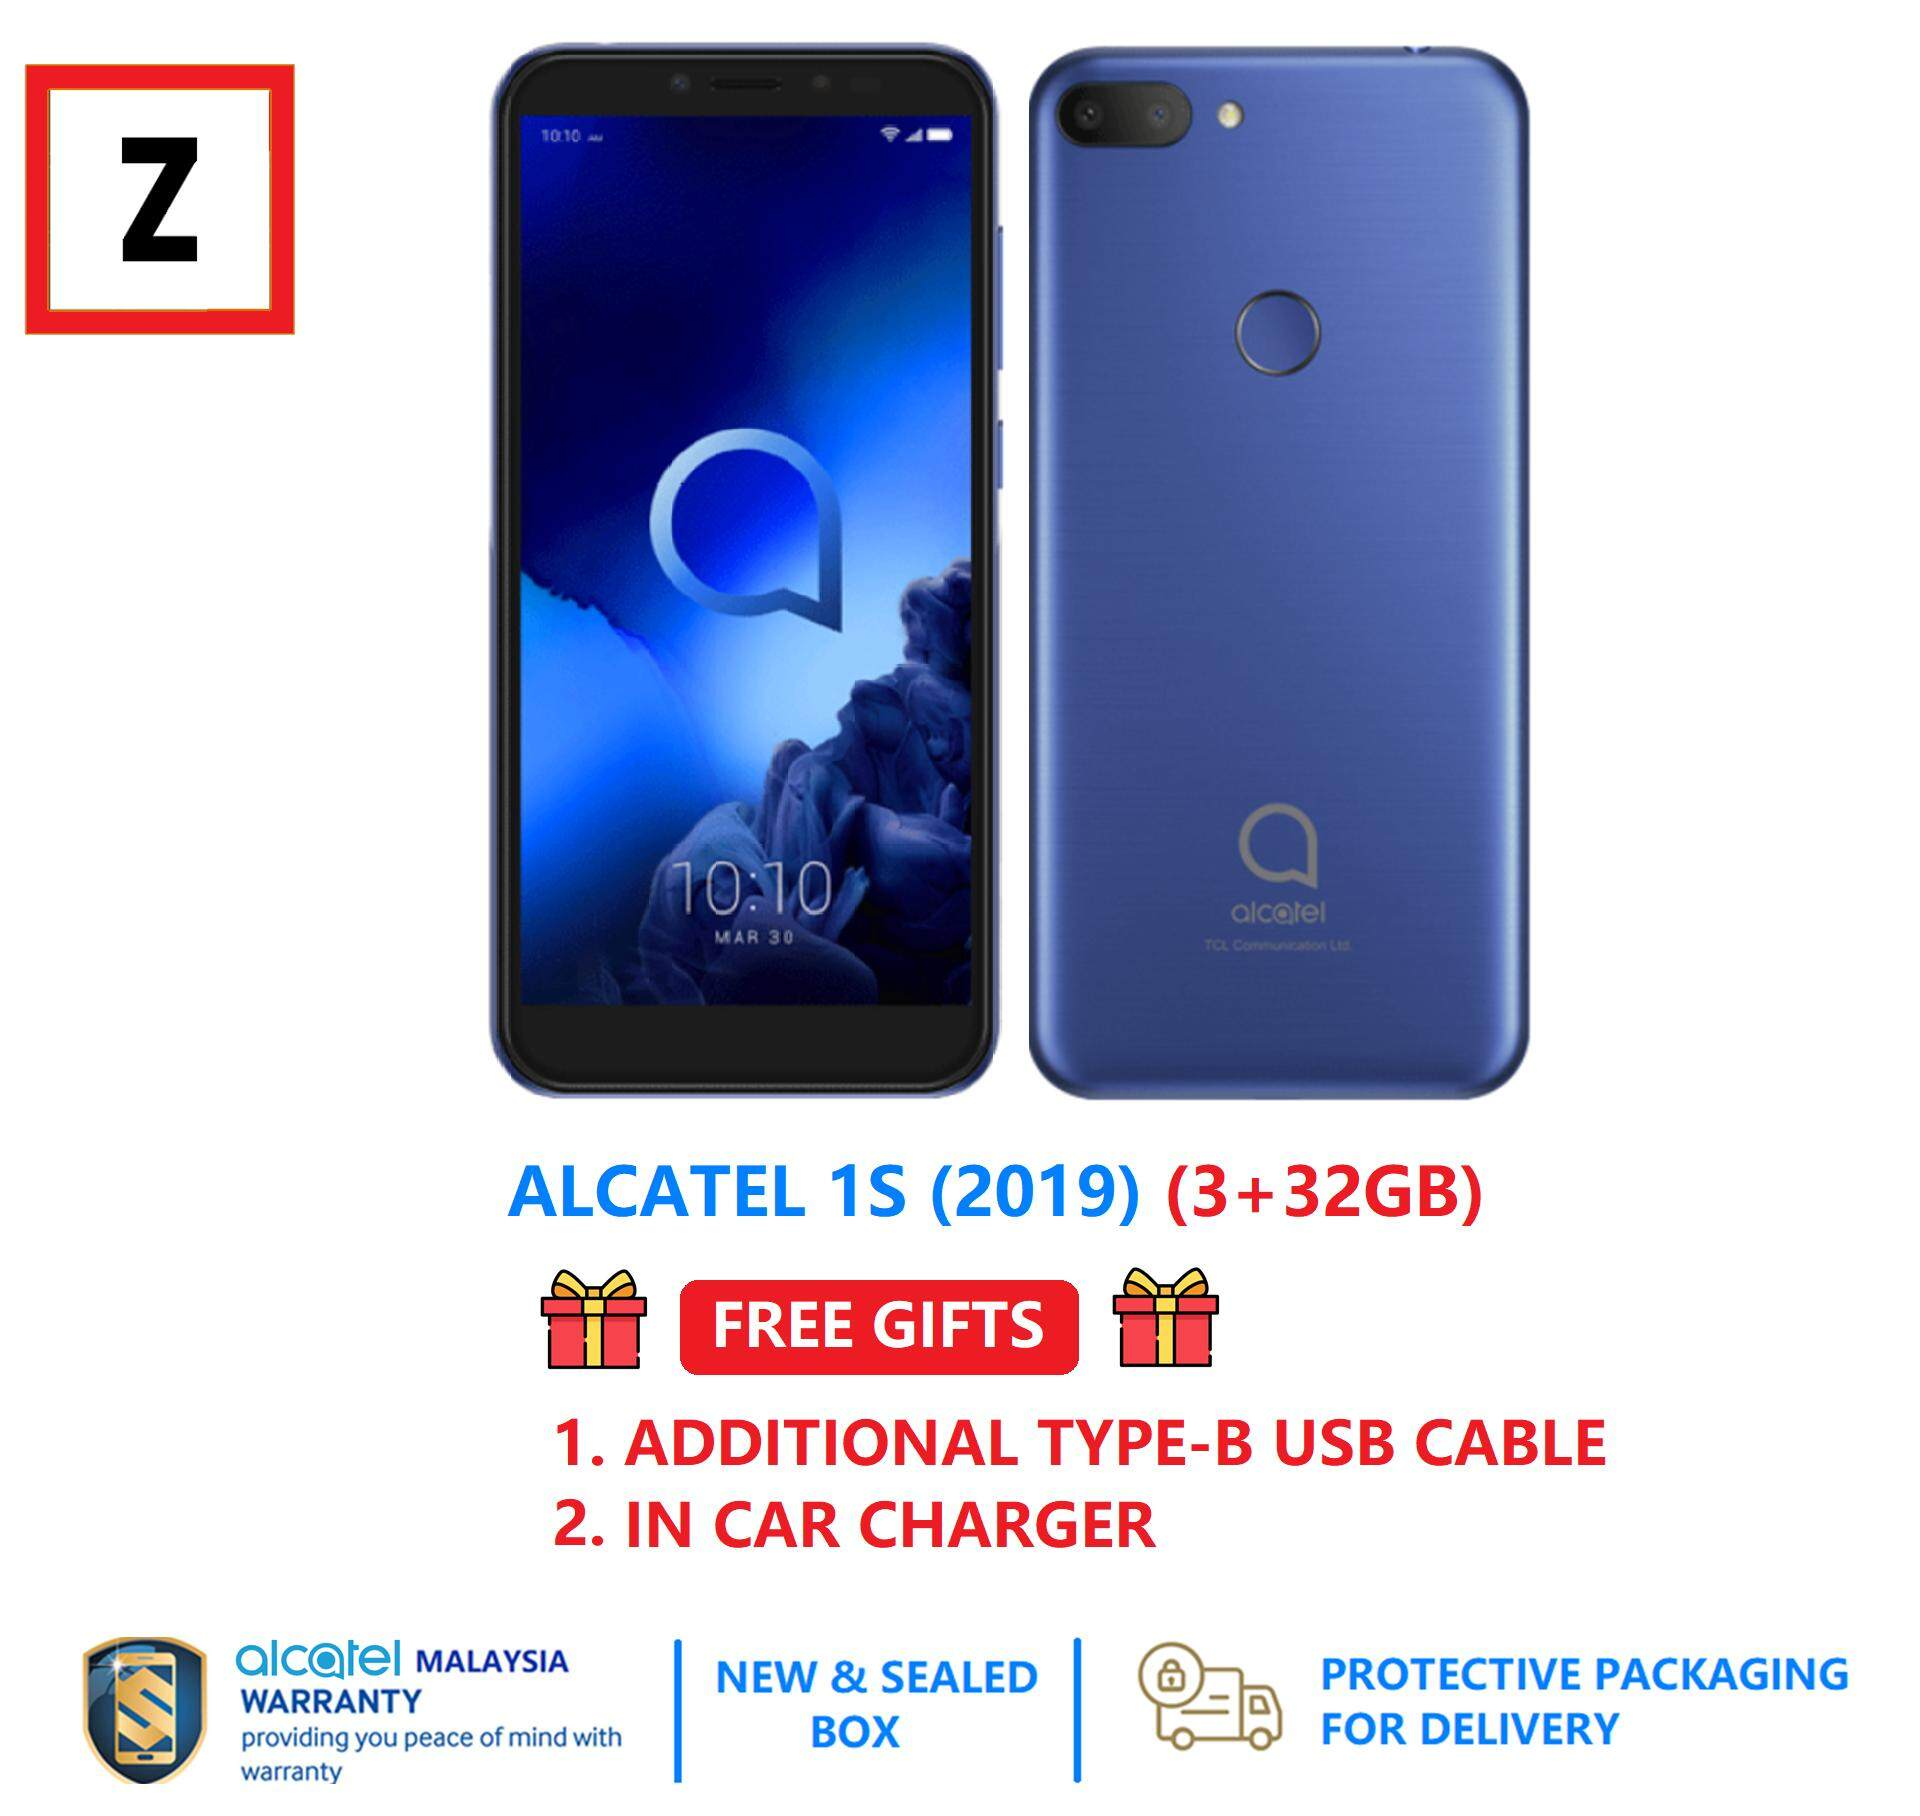 [Free Gifts] Alcatel 1S (2019) [3GB ROM + 32GB Storage] 1 Year Alcatel  Malaysia Warranty